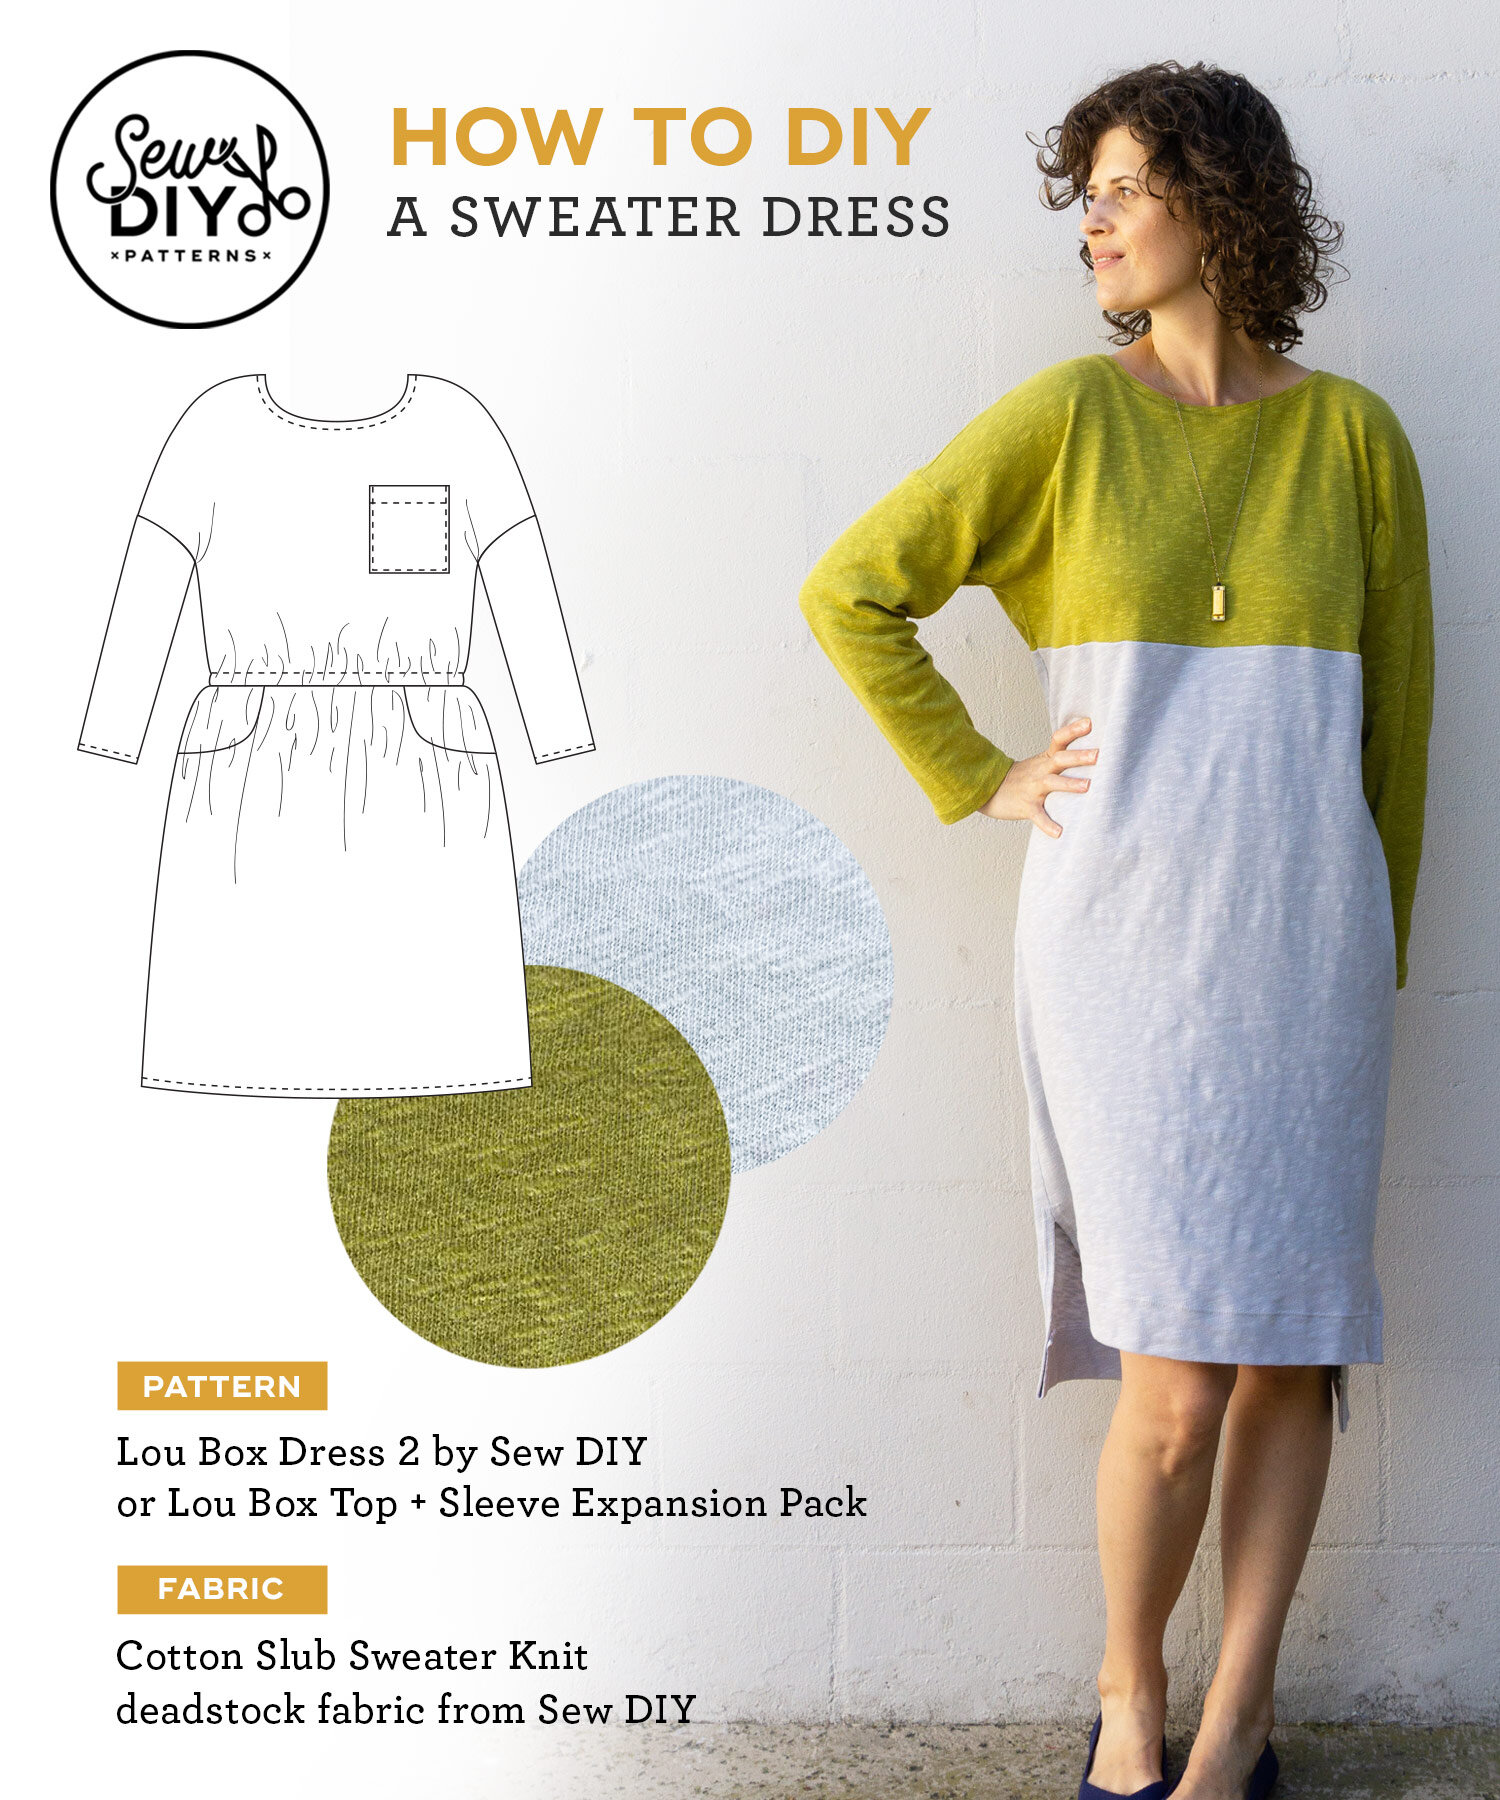 Learn how to sew your own sweater dress | Sew DIY